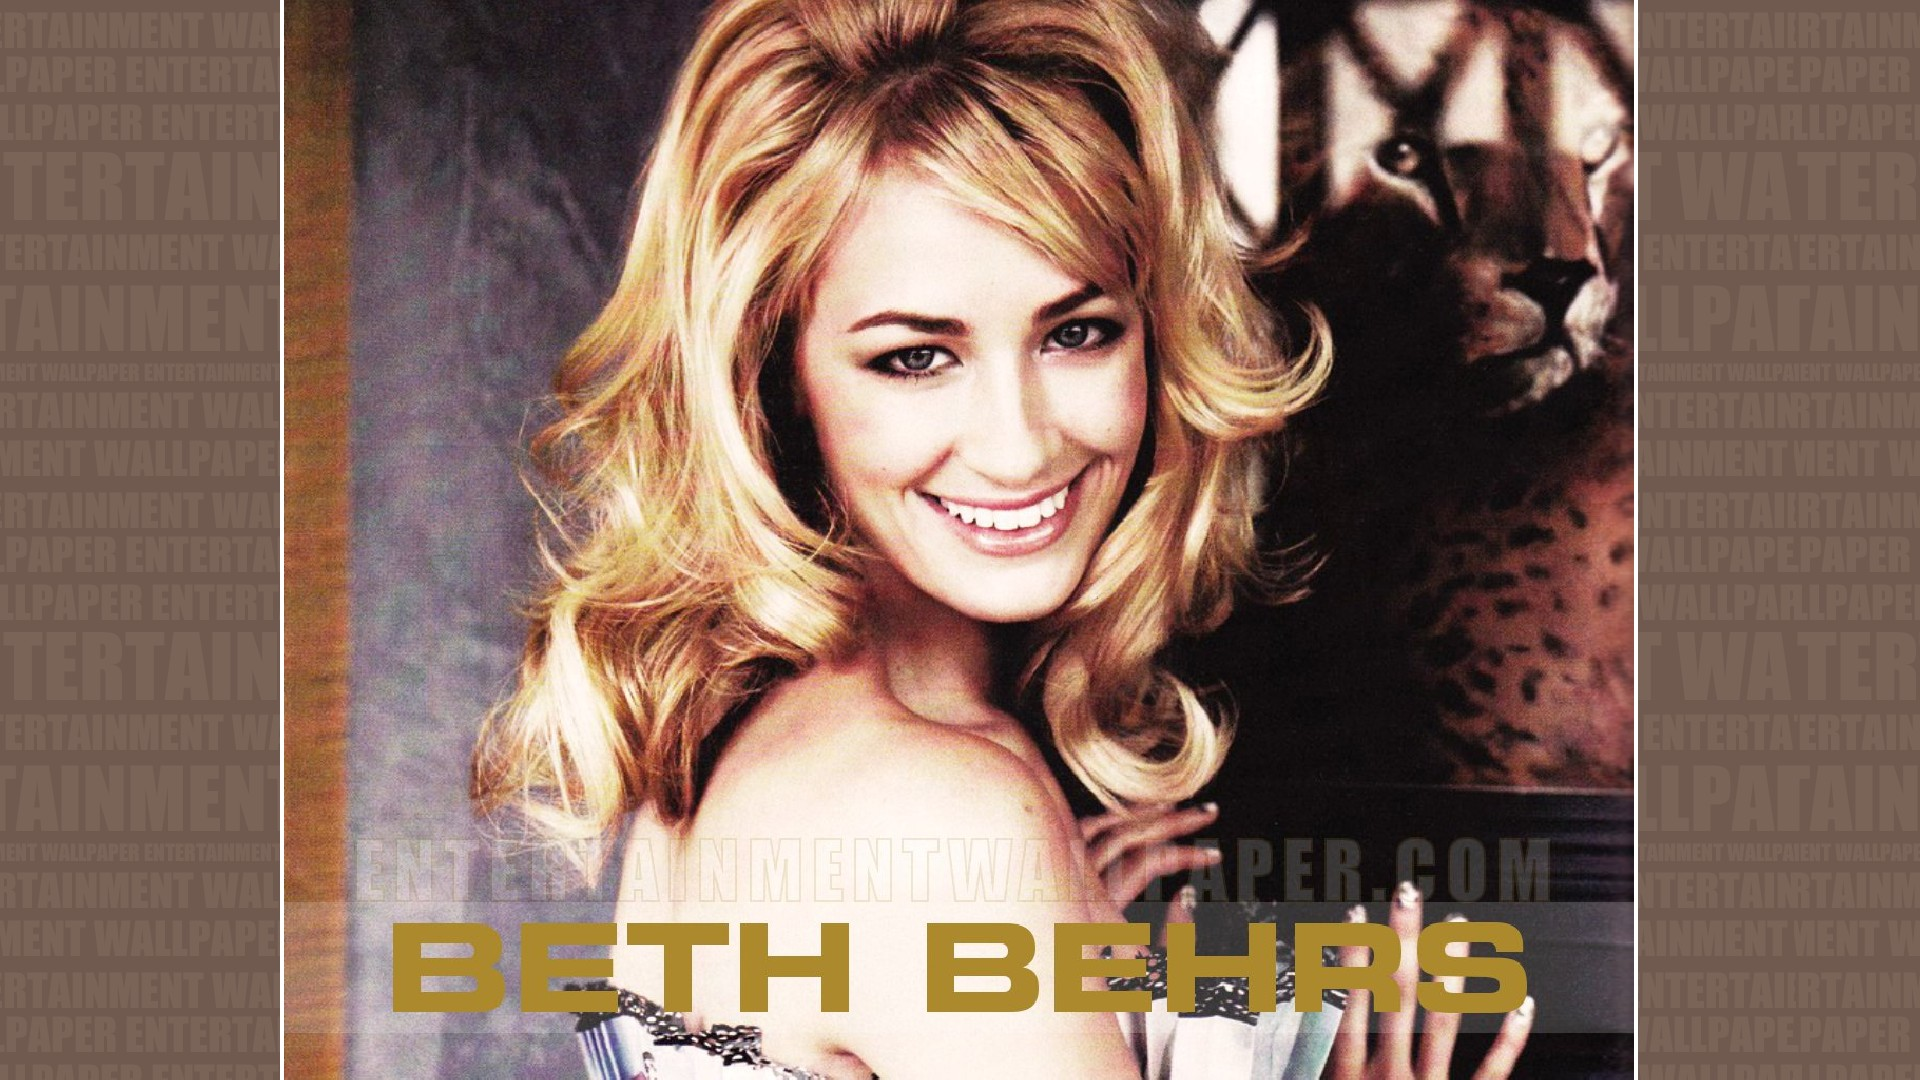 1920x1080 - Beth Behrs Wallpapers 16